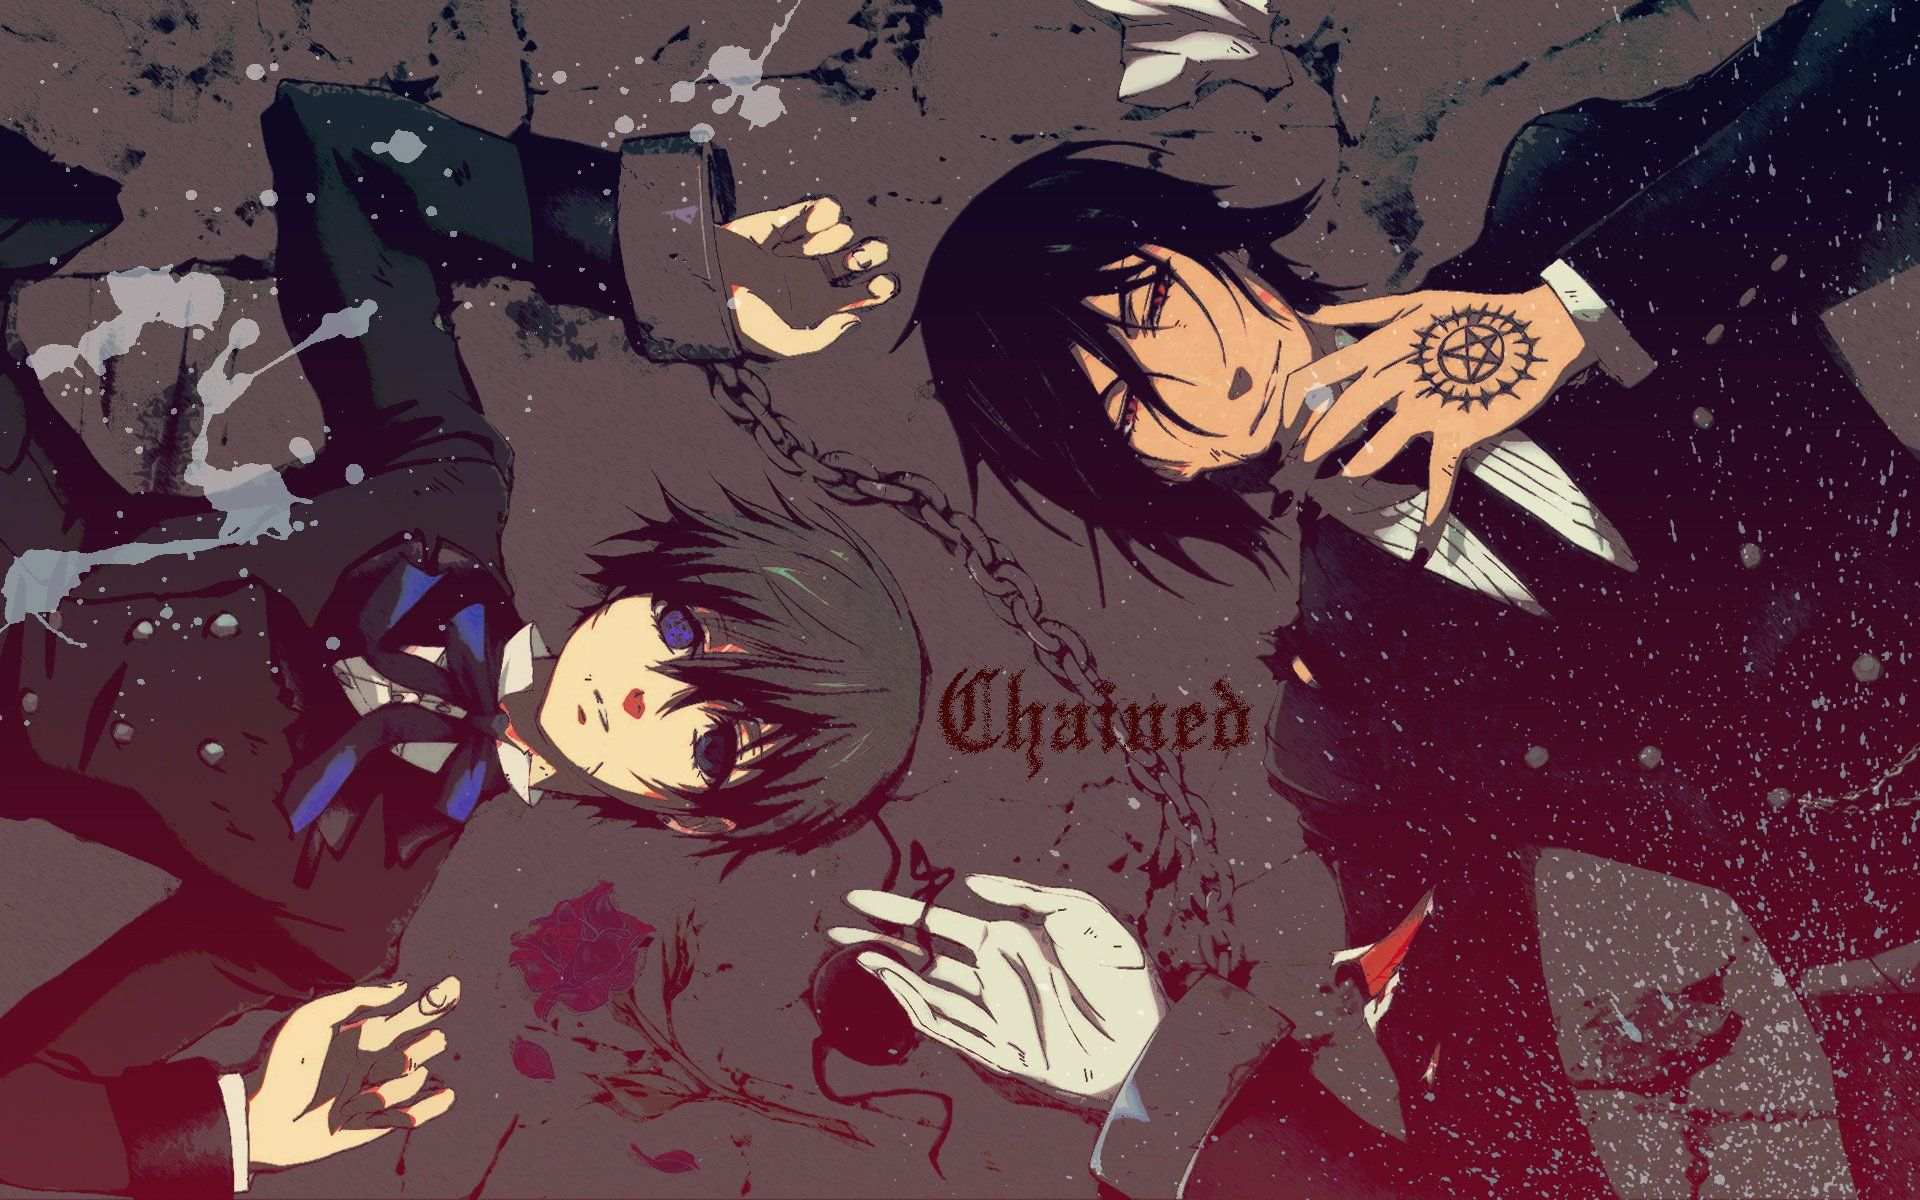 Black Butler Hd Wallpapers Top Free Black Butler Hd Backgrounds